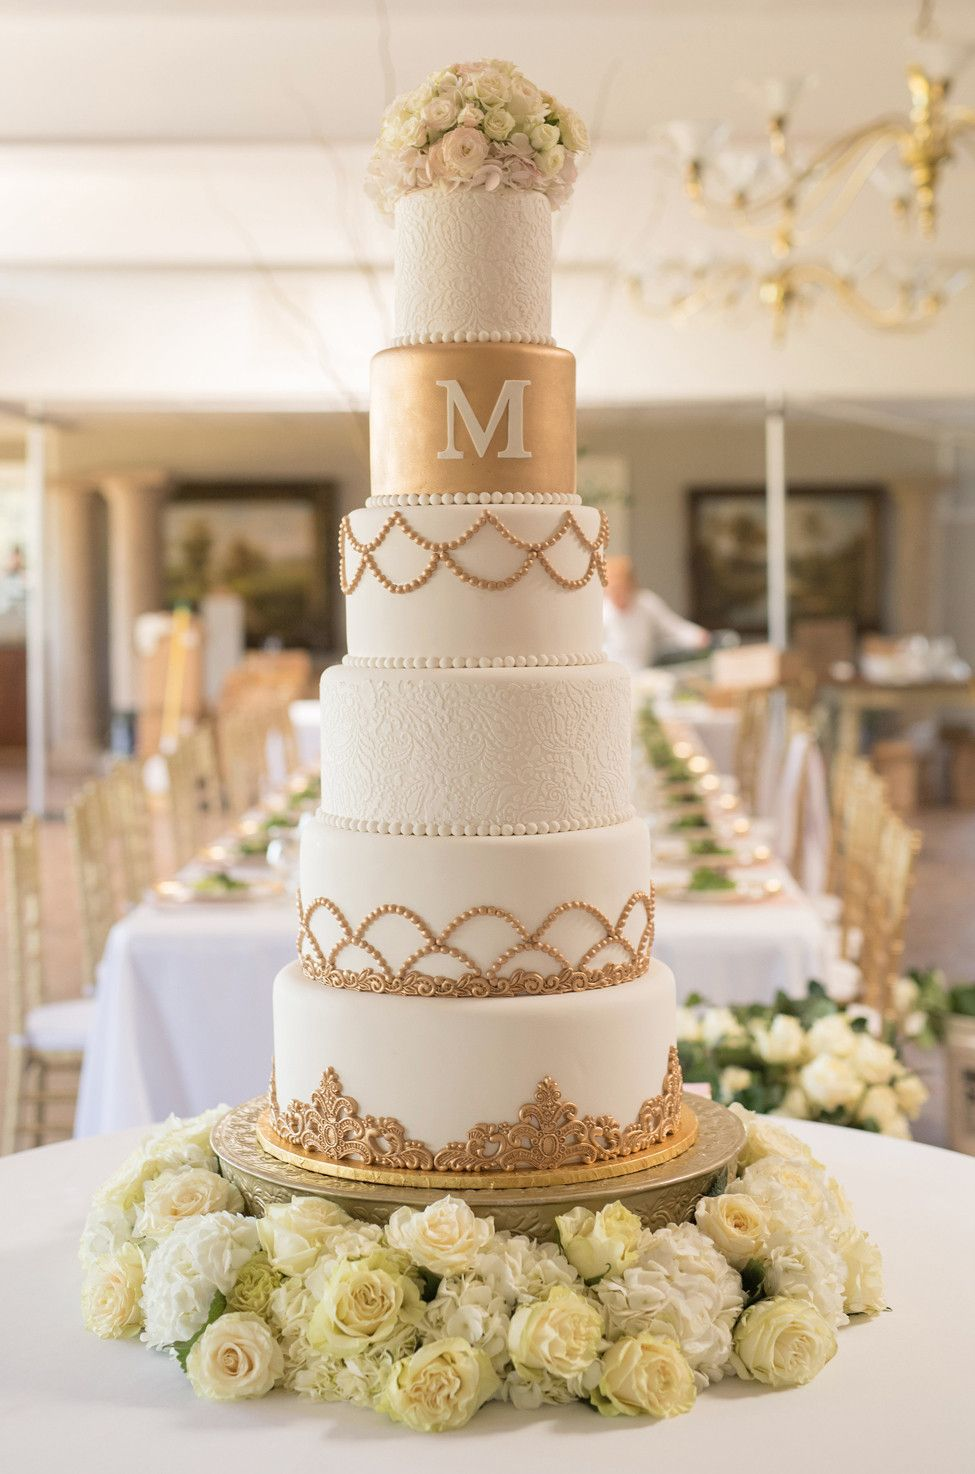 White And Gold Classic Wedding Cake With A Floral Base Sydney